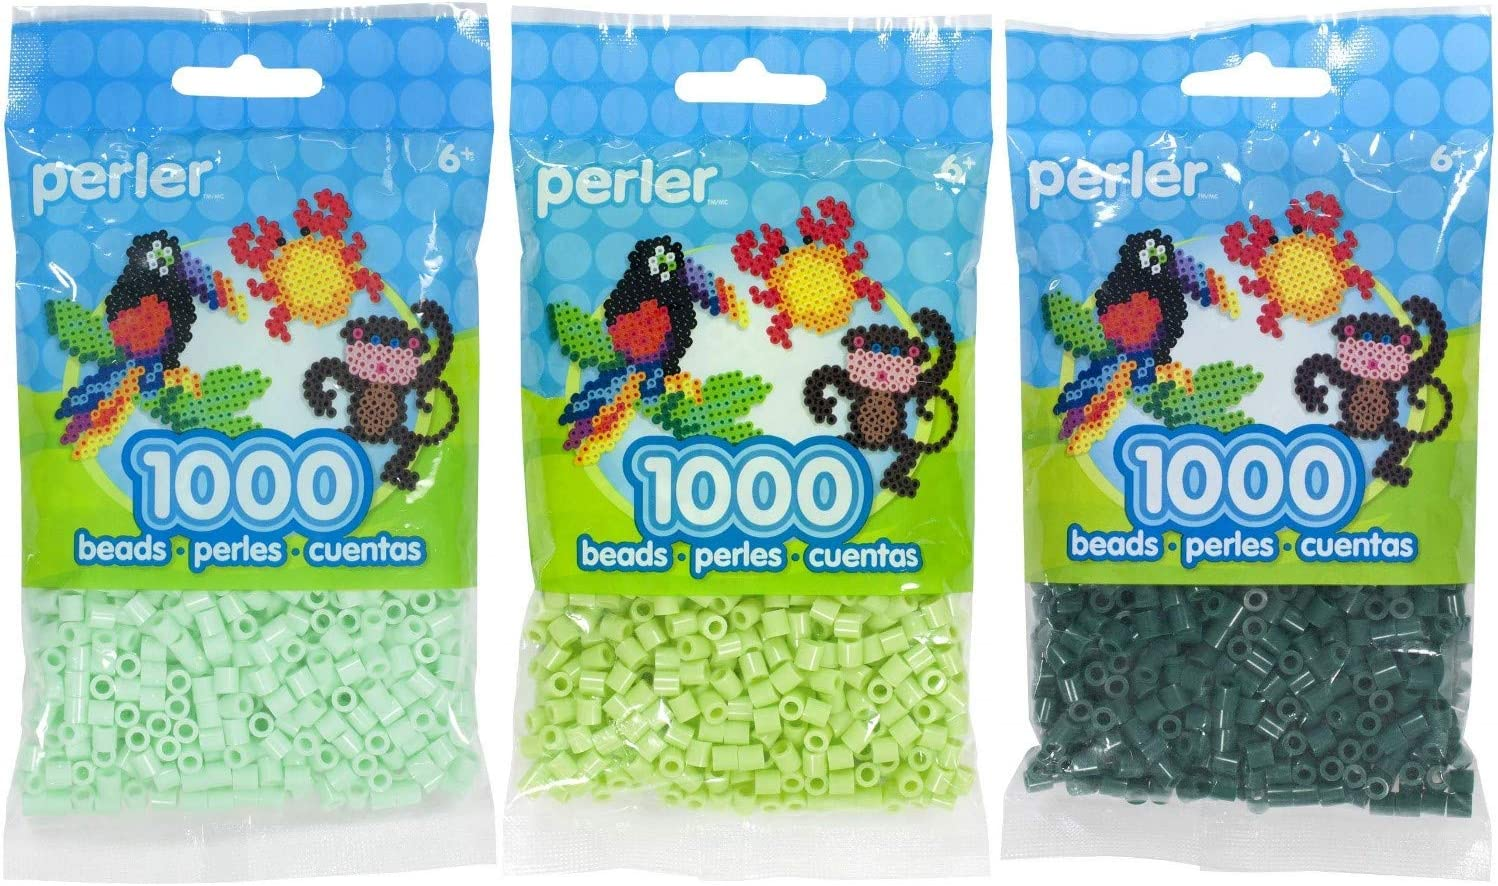 Perler Bead Bag 1000, 3-Pack - Mint, Sour Apple and Forest